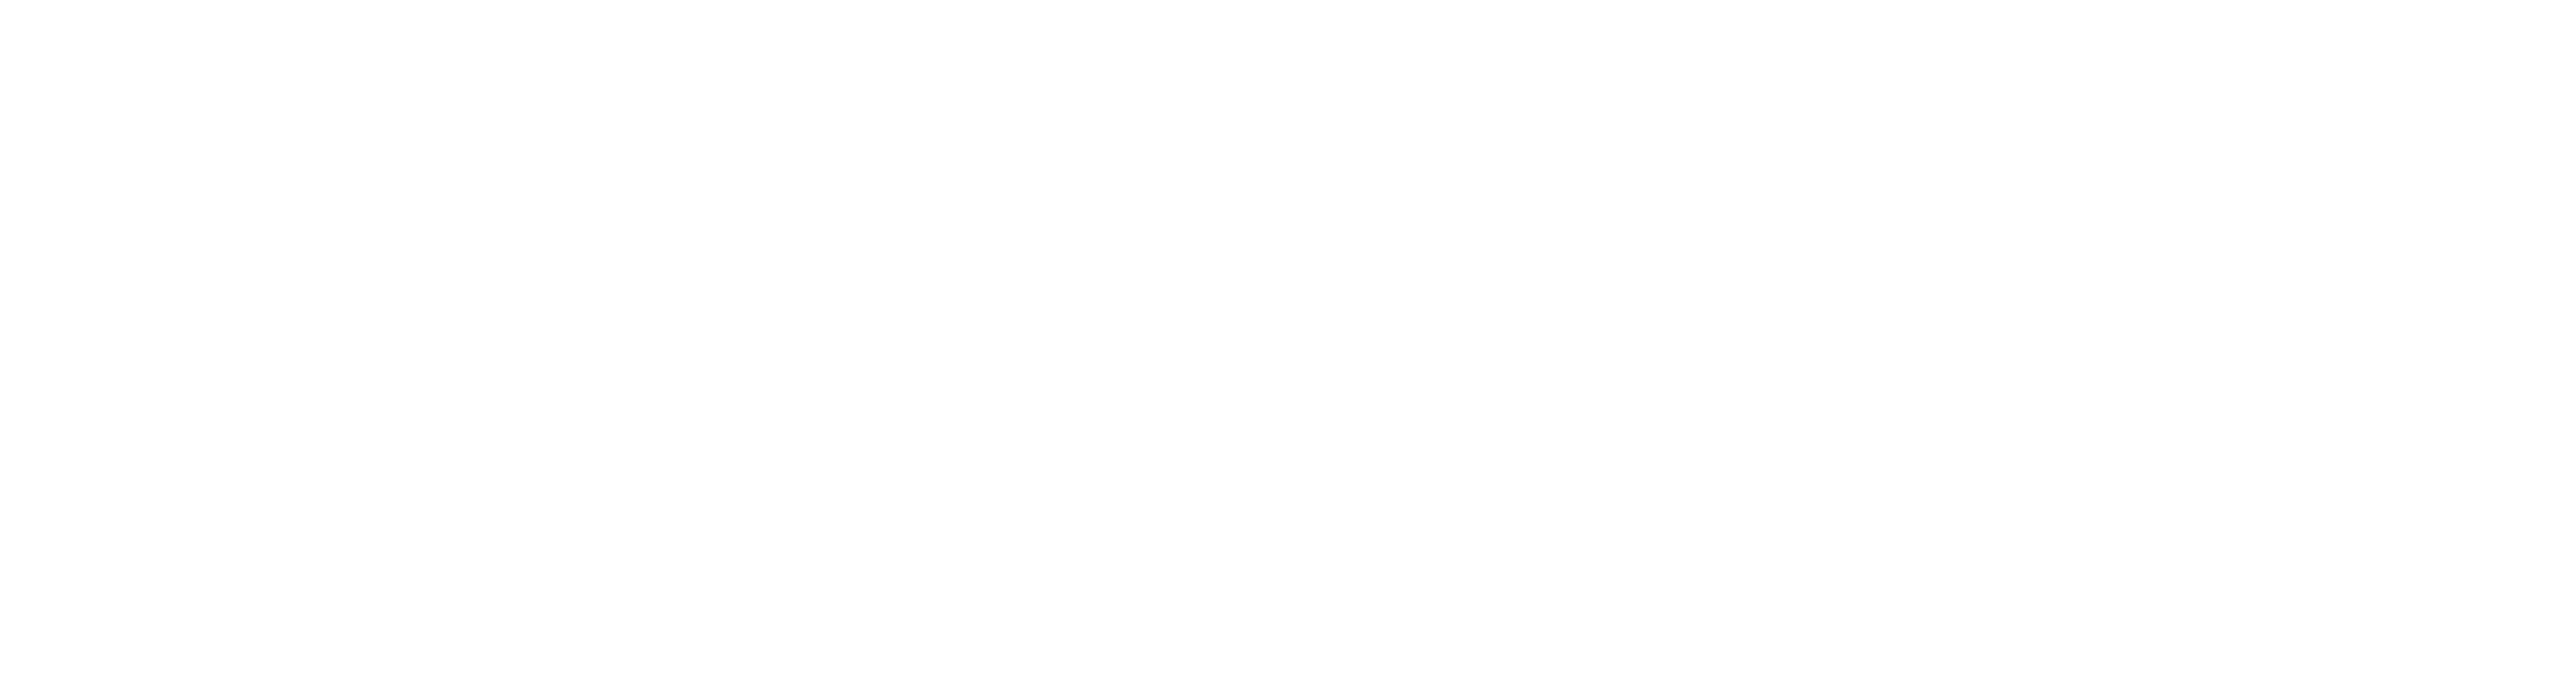 Saxon Auto Group